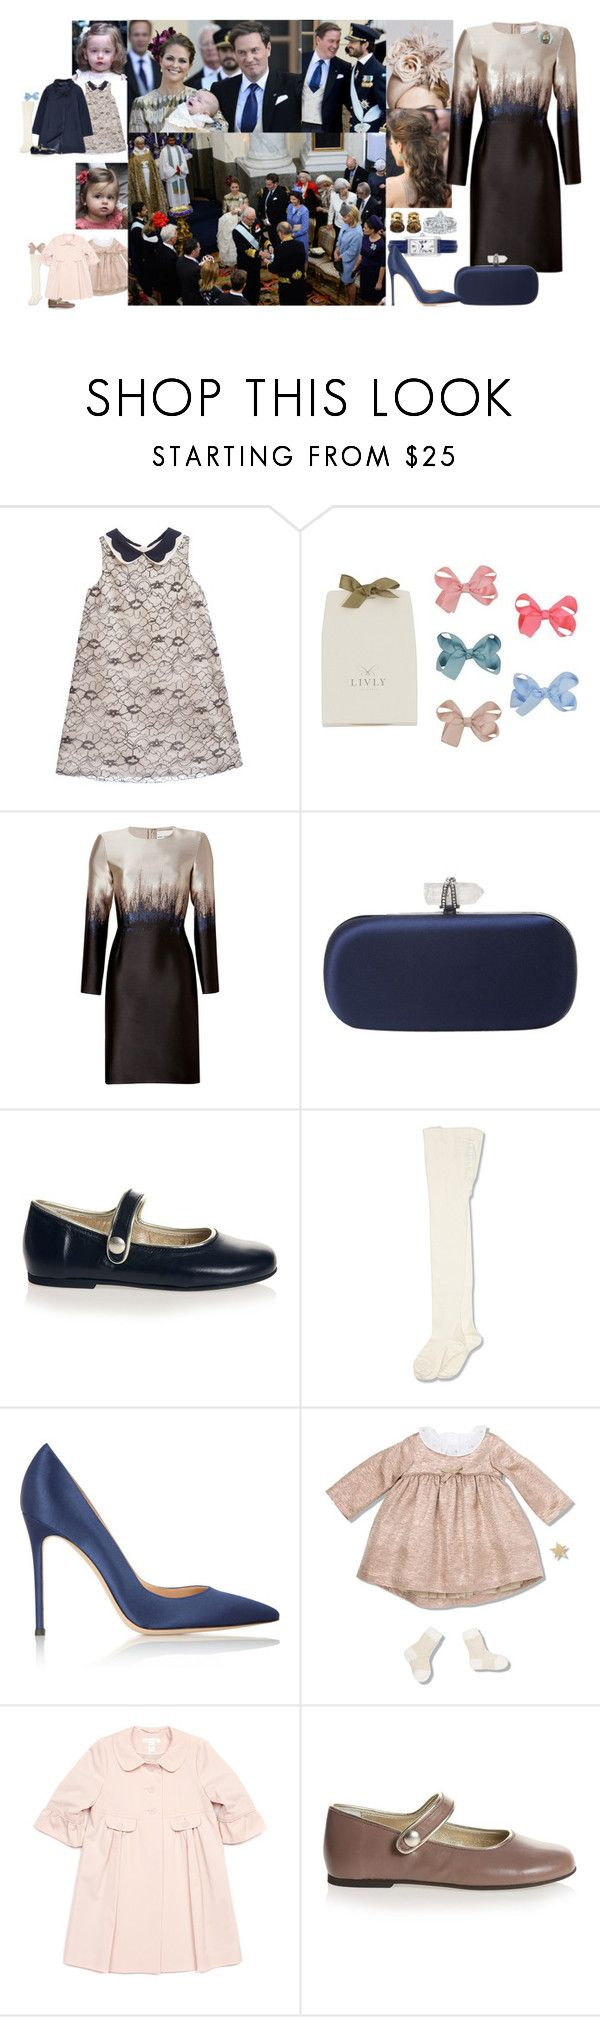 """""""Royalistas: Princess Louise of Sweden and Denmark Attends the Christening of Her Nephew-Prince Nicolas of Sweden- With Her Husband-Prince Carl-Philip of Sweden and Denmark- and Her Two Daughters"""" by louiseingrid-ofdenmark ❤ liked on Polyvore featuring Mary Katrantzou, Oscar de la Renta, Marchesa, Sarah Jessica Parker, Gianvito Rossi, Marie Chantal, Christina Addison, women's clothing, women's fashion and women"""